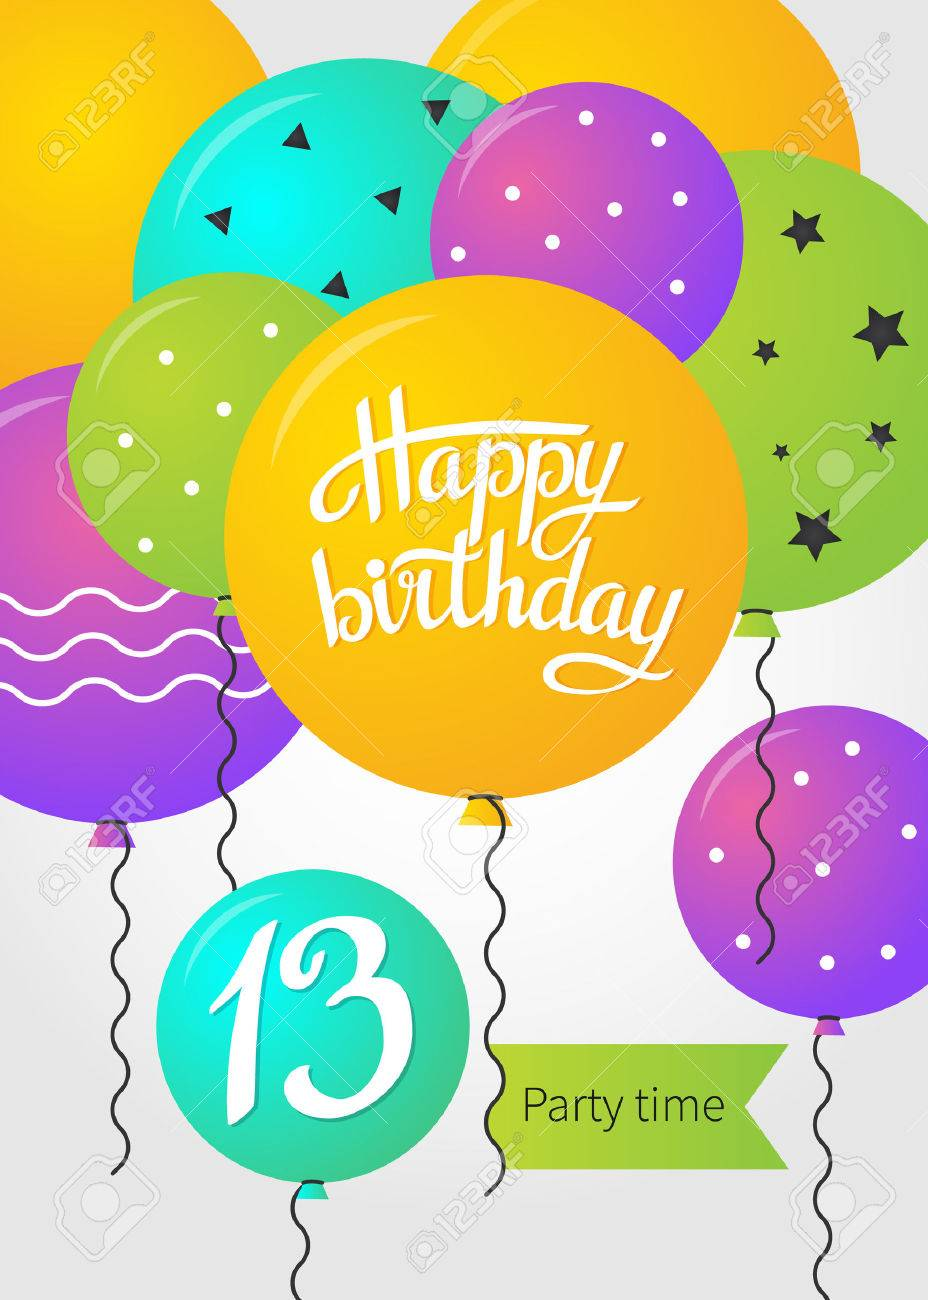 Happy Birthday Card Template With Balloons 13 Years Vector Illustration Stock